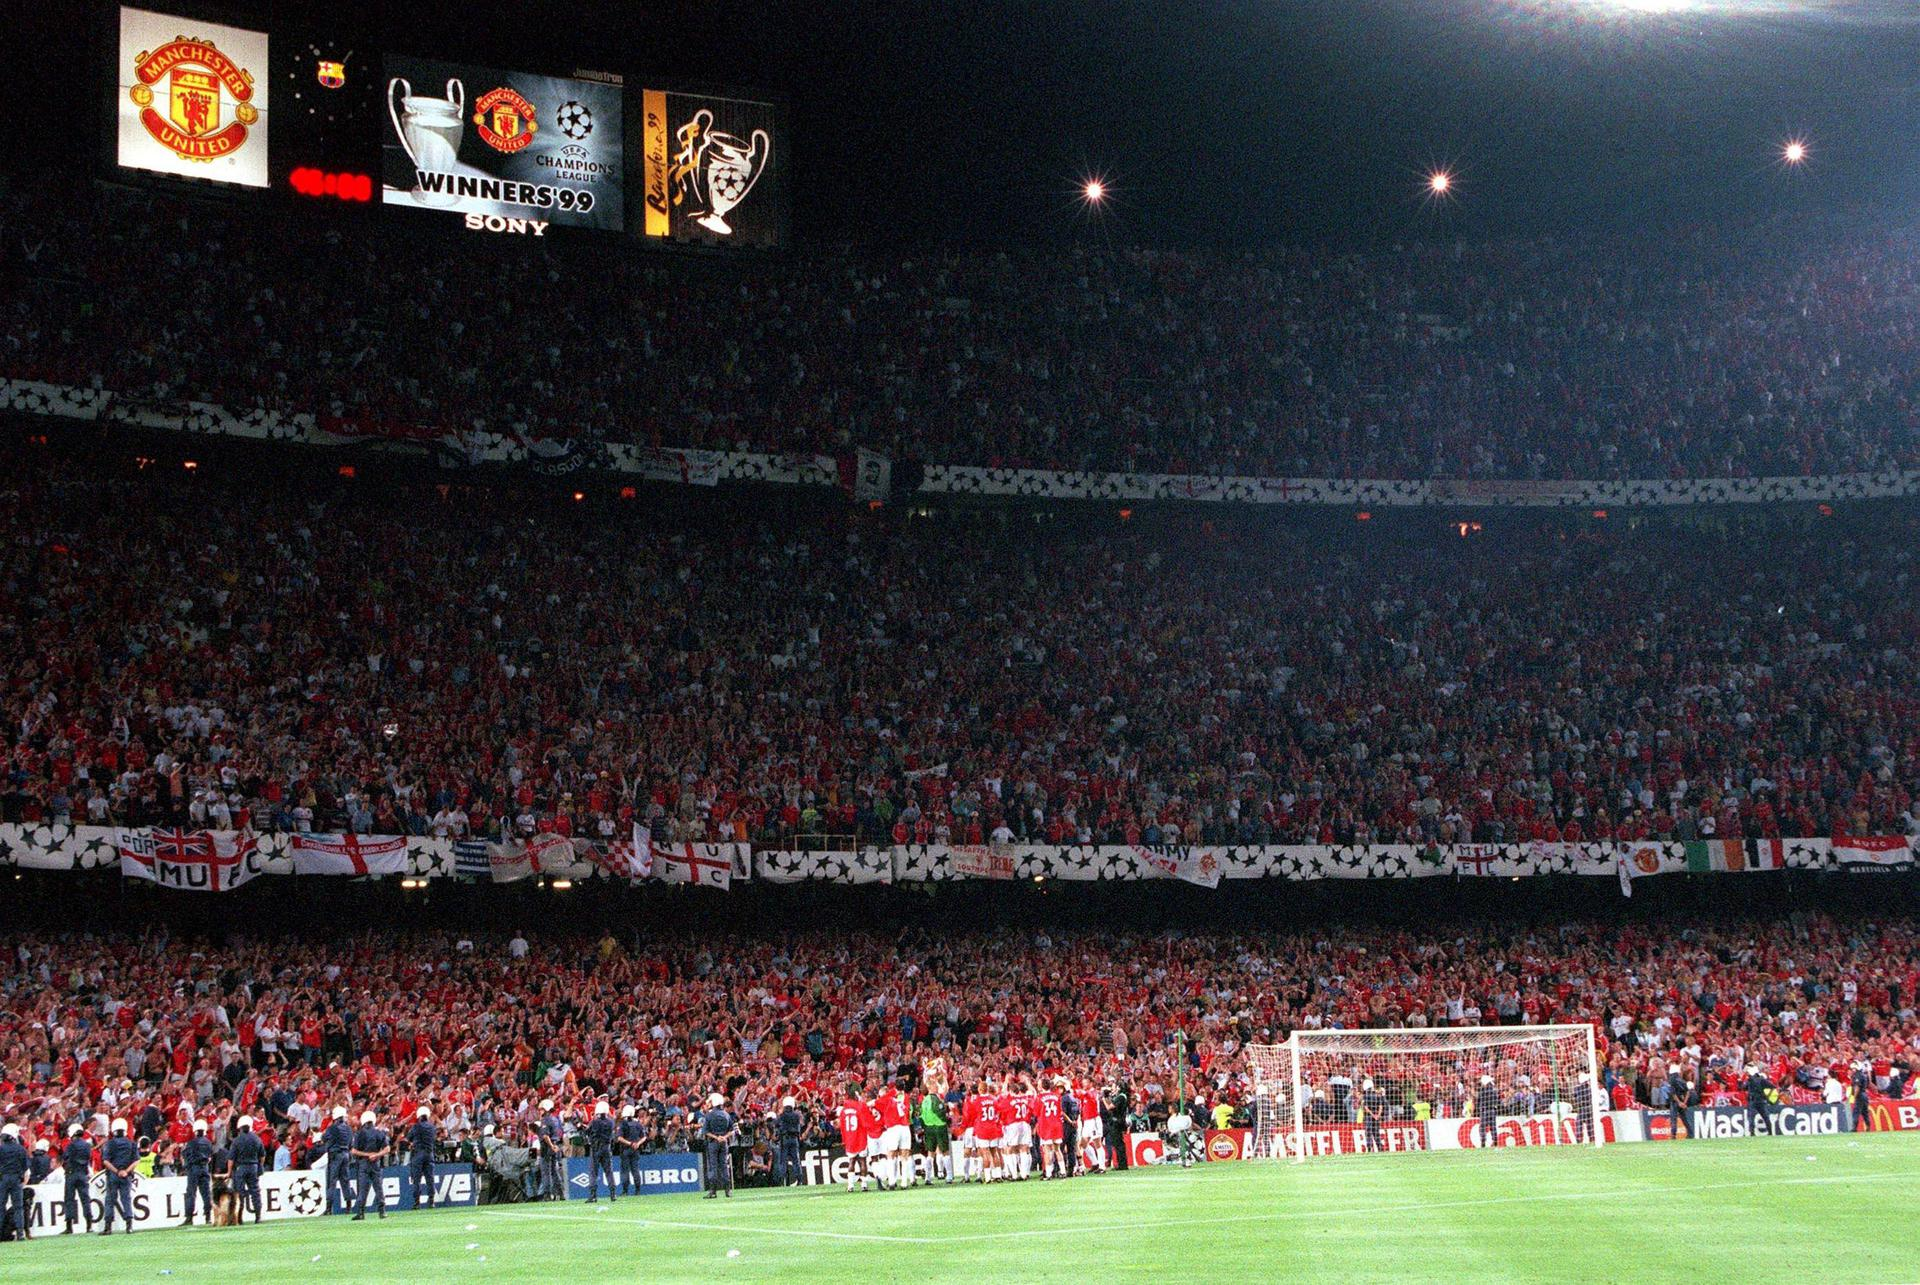 United fans at the Nou Camp on 26 May 1999.